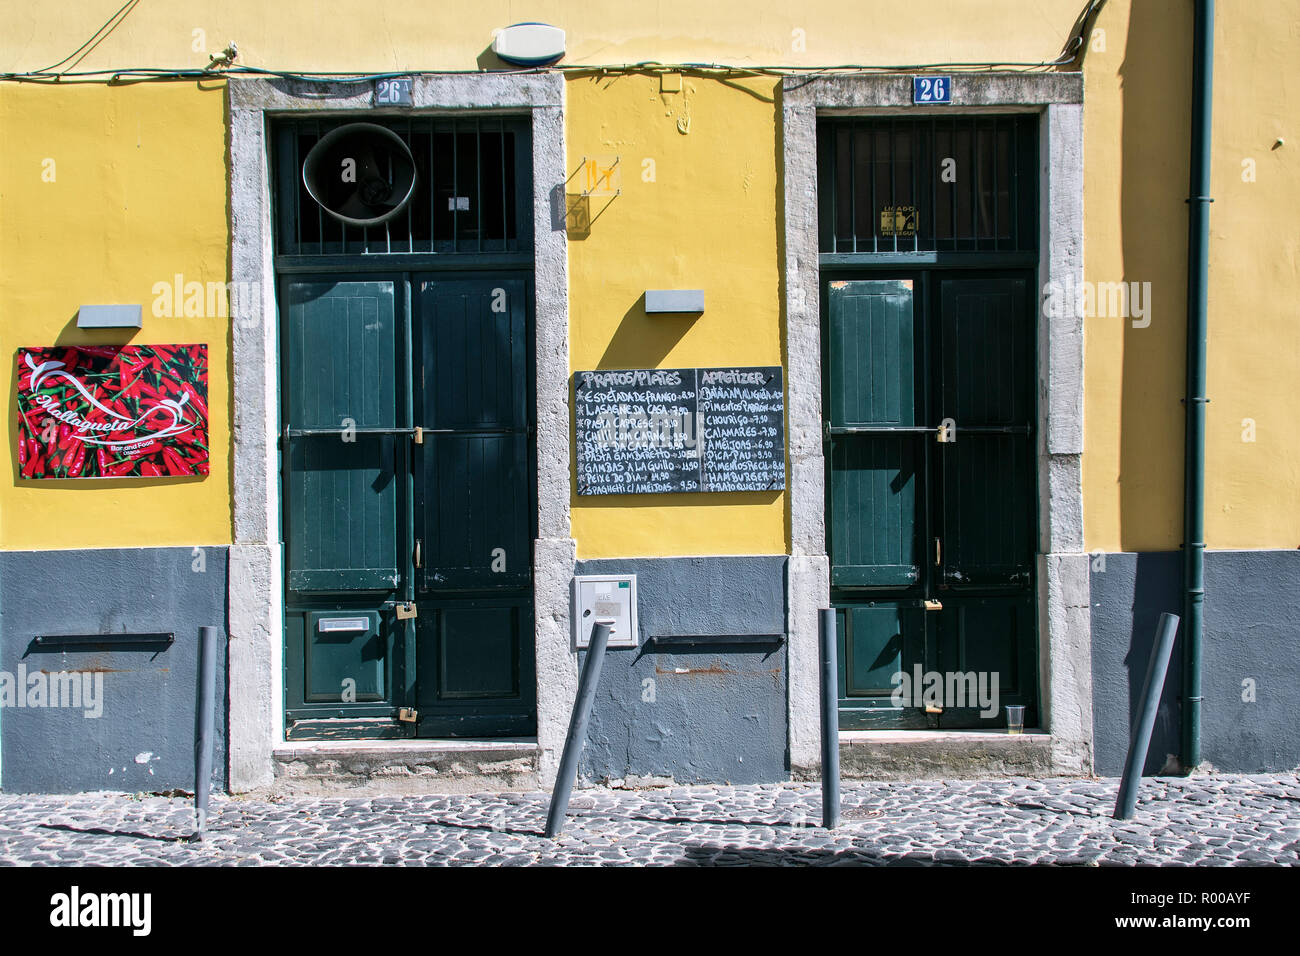 Yellow building facade with menu and closed doors in the Alfama district, Lisbon, Portugal. - Stock Image